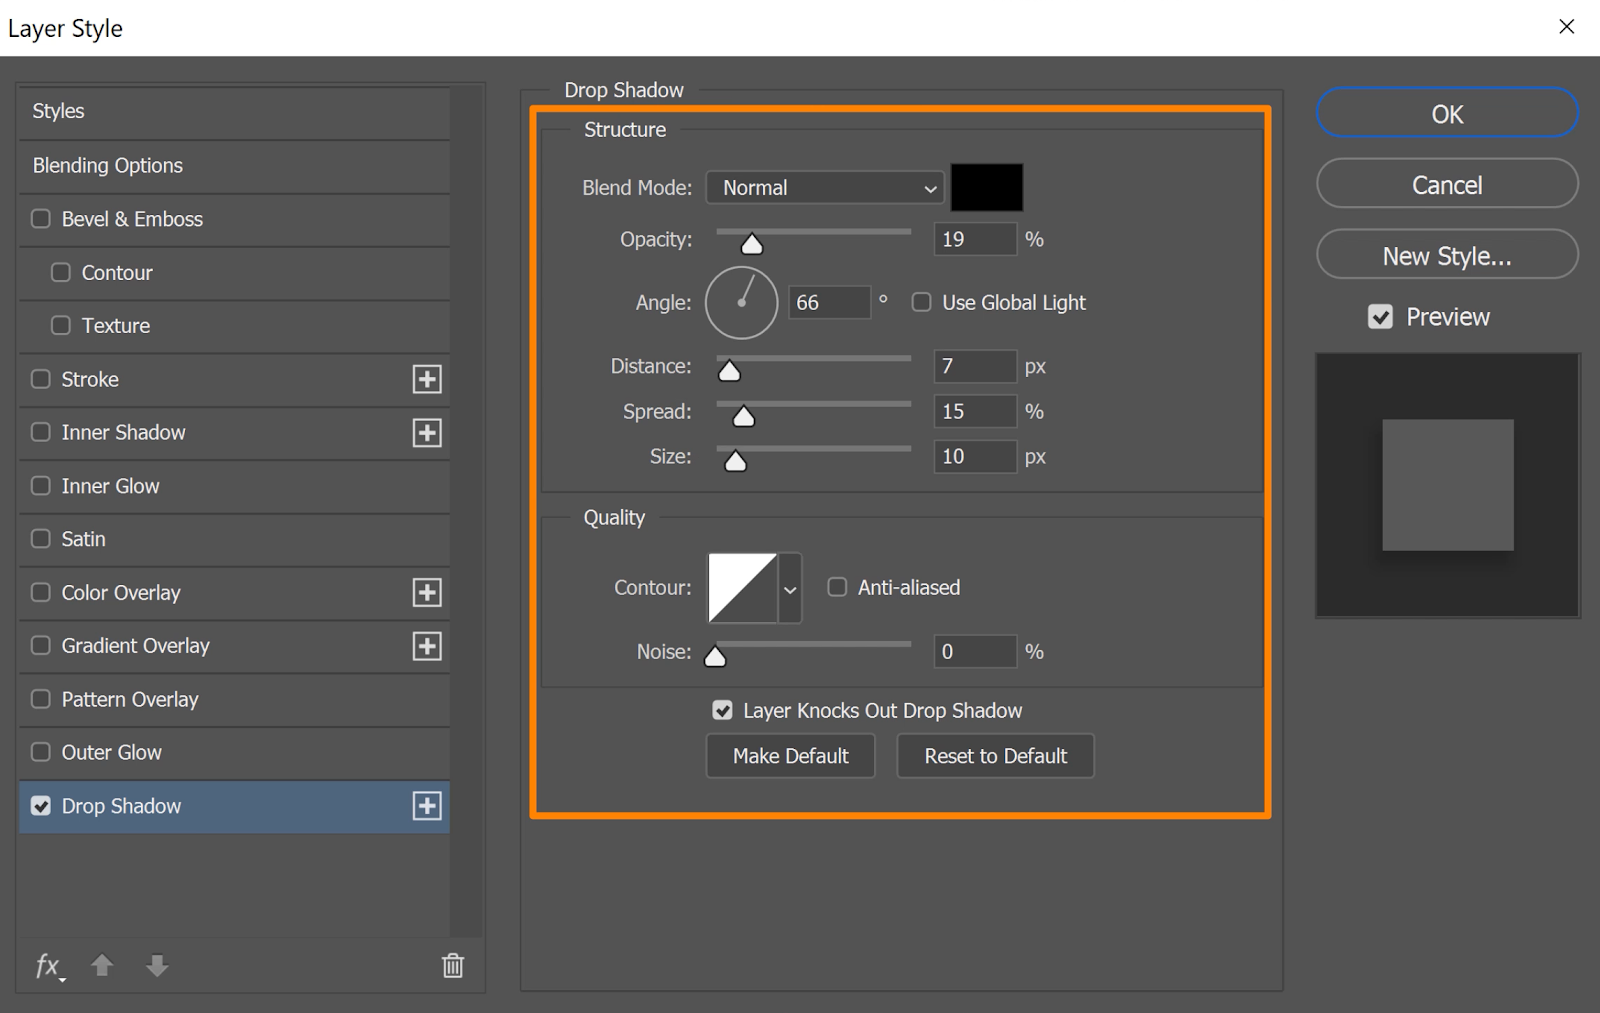 Use the Structure and Quality controls to edit the adjustments on your drop shadow